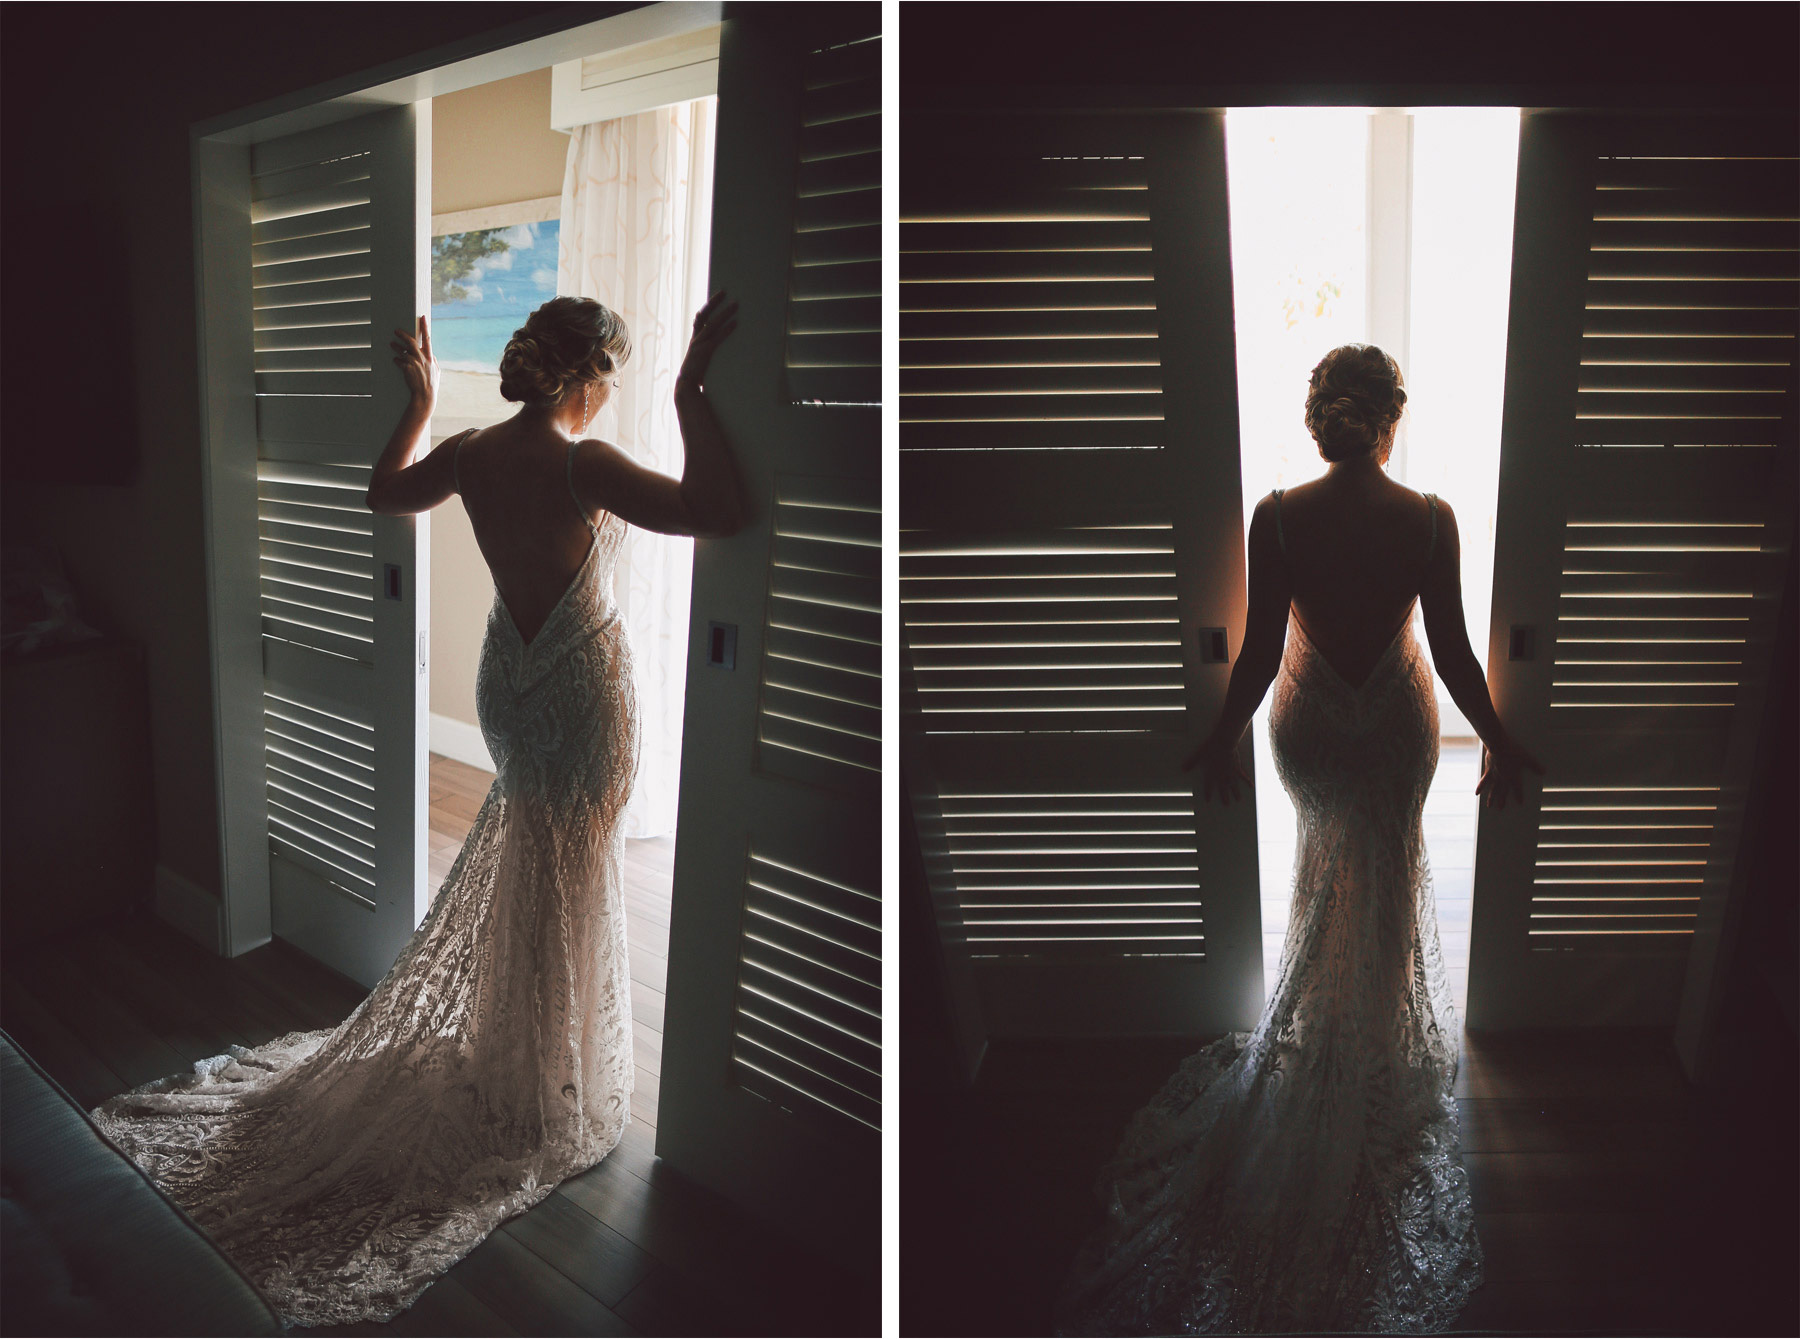 03-Key-Largo-Florida-Keys-Wedding-Photographer-by-Andrew-Vick-Photography-Playa-Largo-Resort-and-Spa-Hotel-Destination-Winter-Getting-Ready-Bride-Dress-Silhouette-Vintage-Carrie-and-Brian.jpg